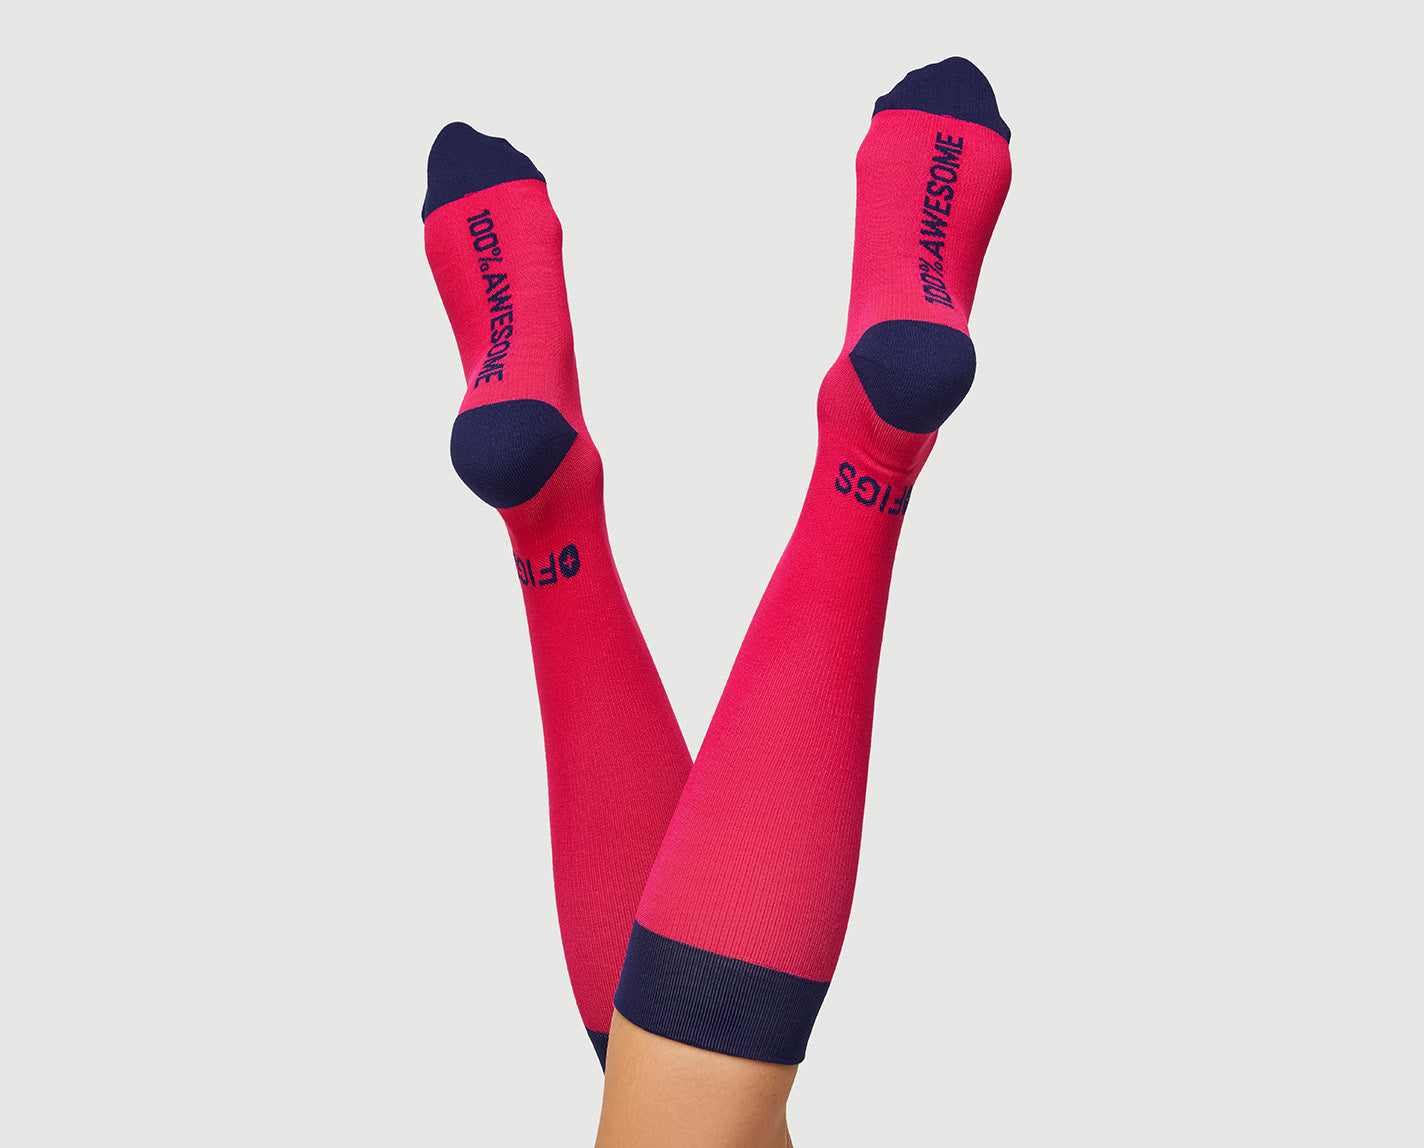 For wherever your legs and feet take you. 100% Awesome Compression Socks that are ridiculously soft and help relieve tired and achy legs.